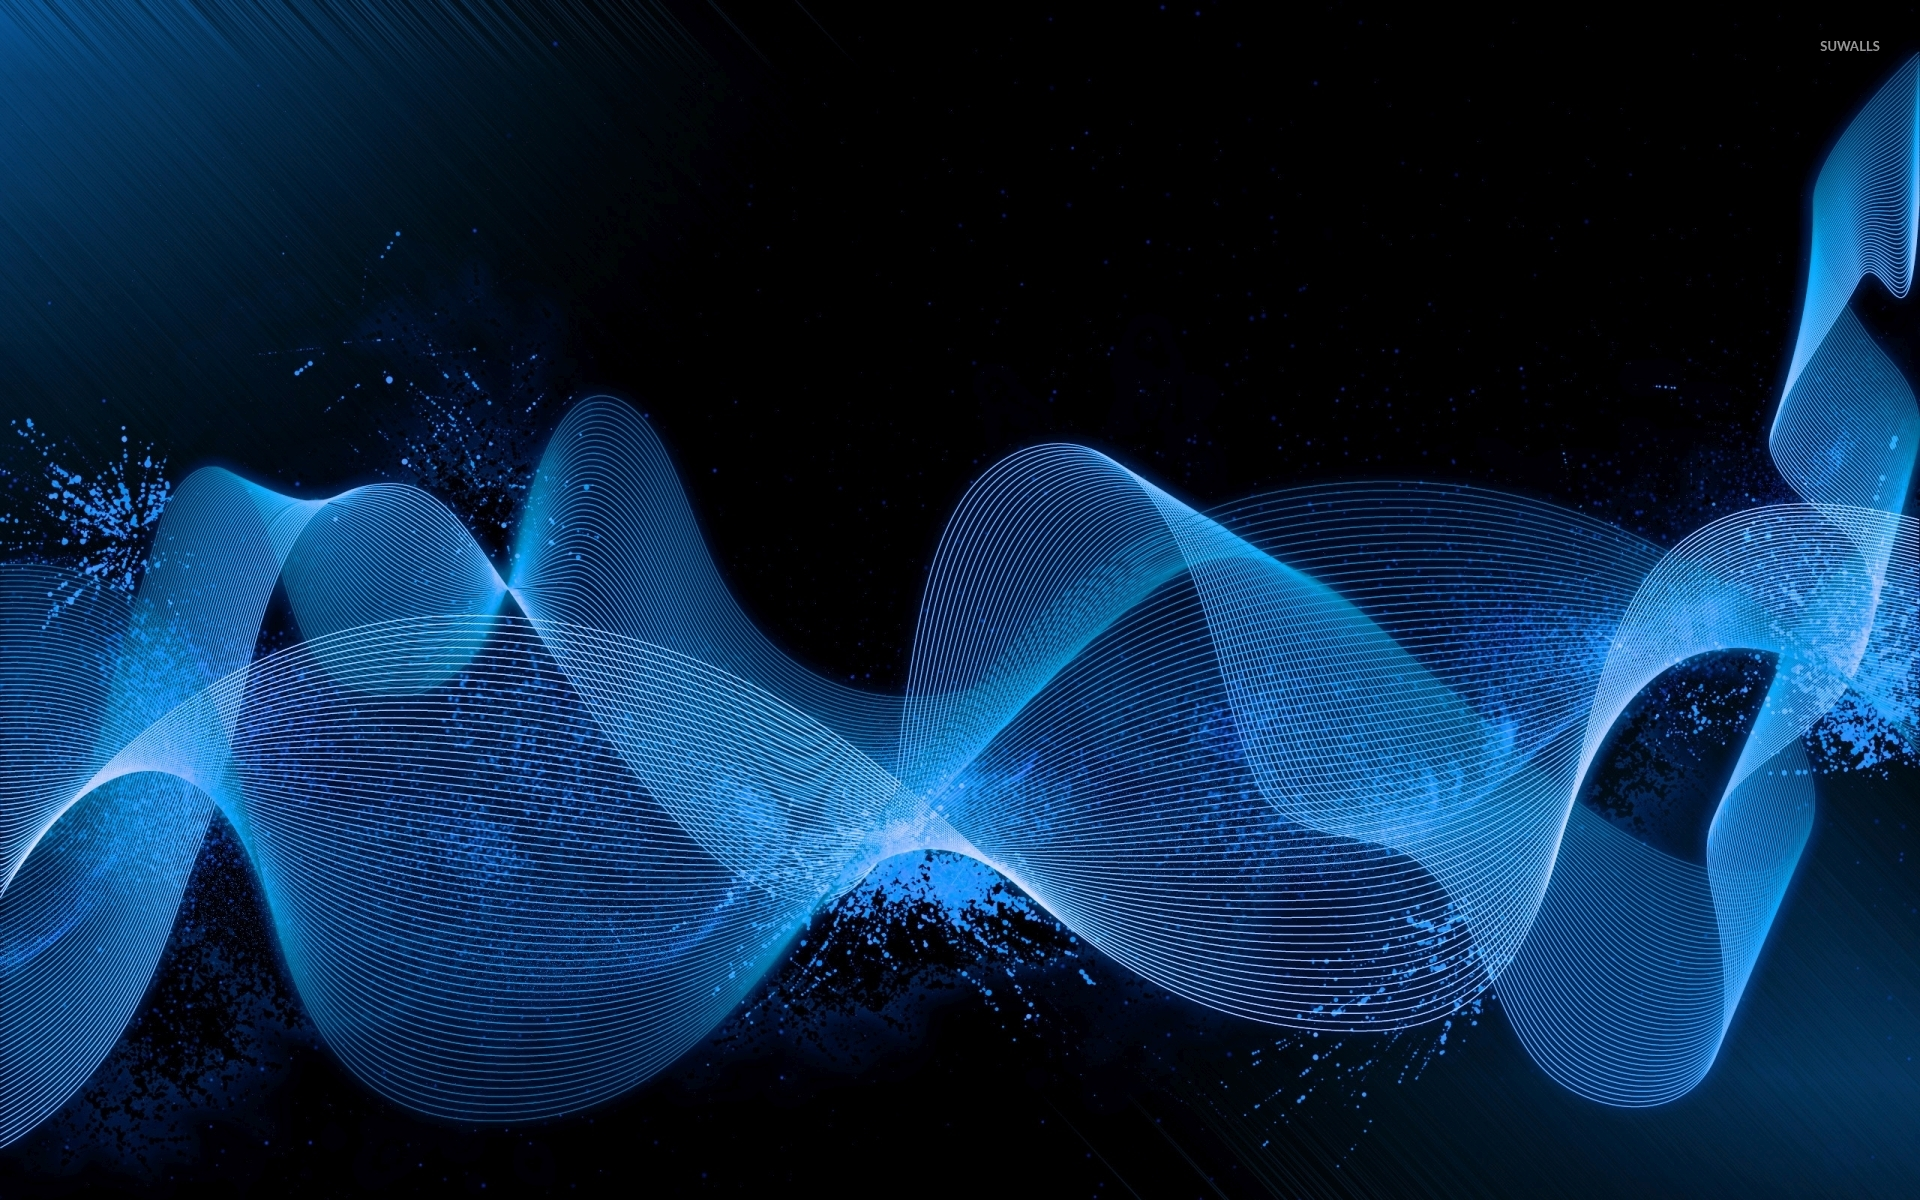 Blue waves wallpaper - Abstract wallpapers - #42756